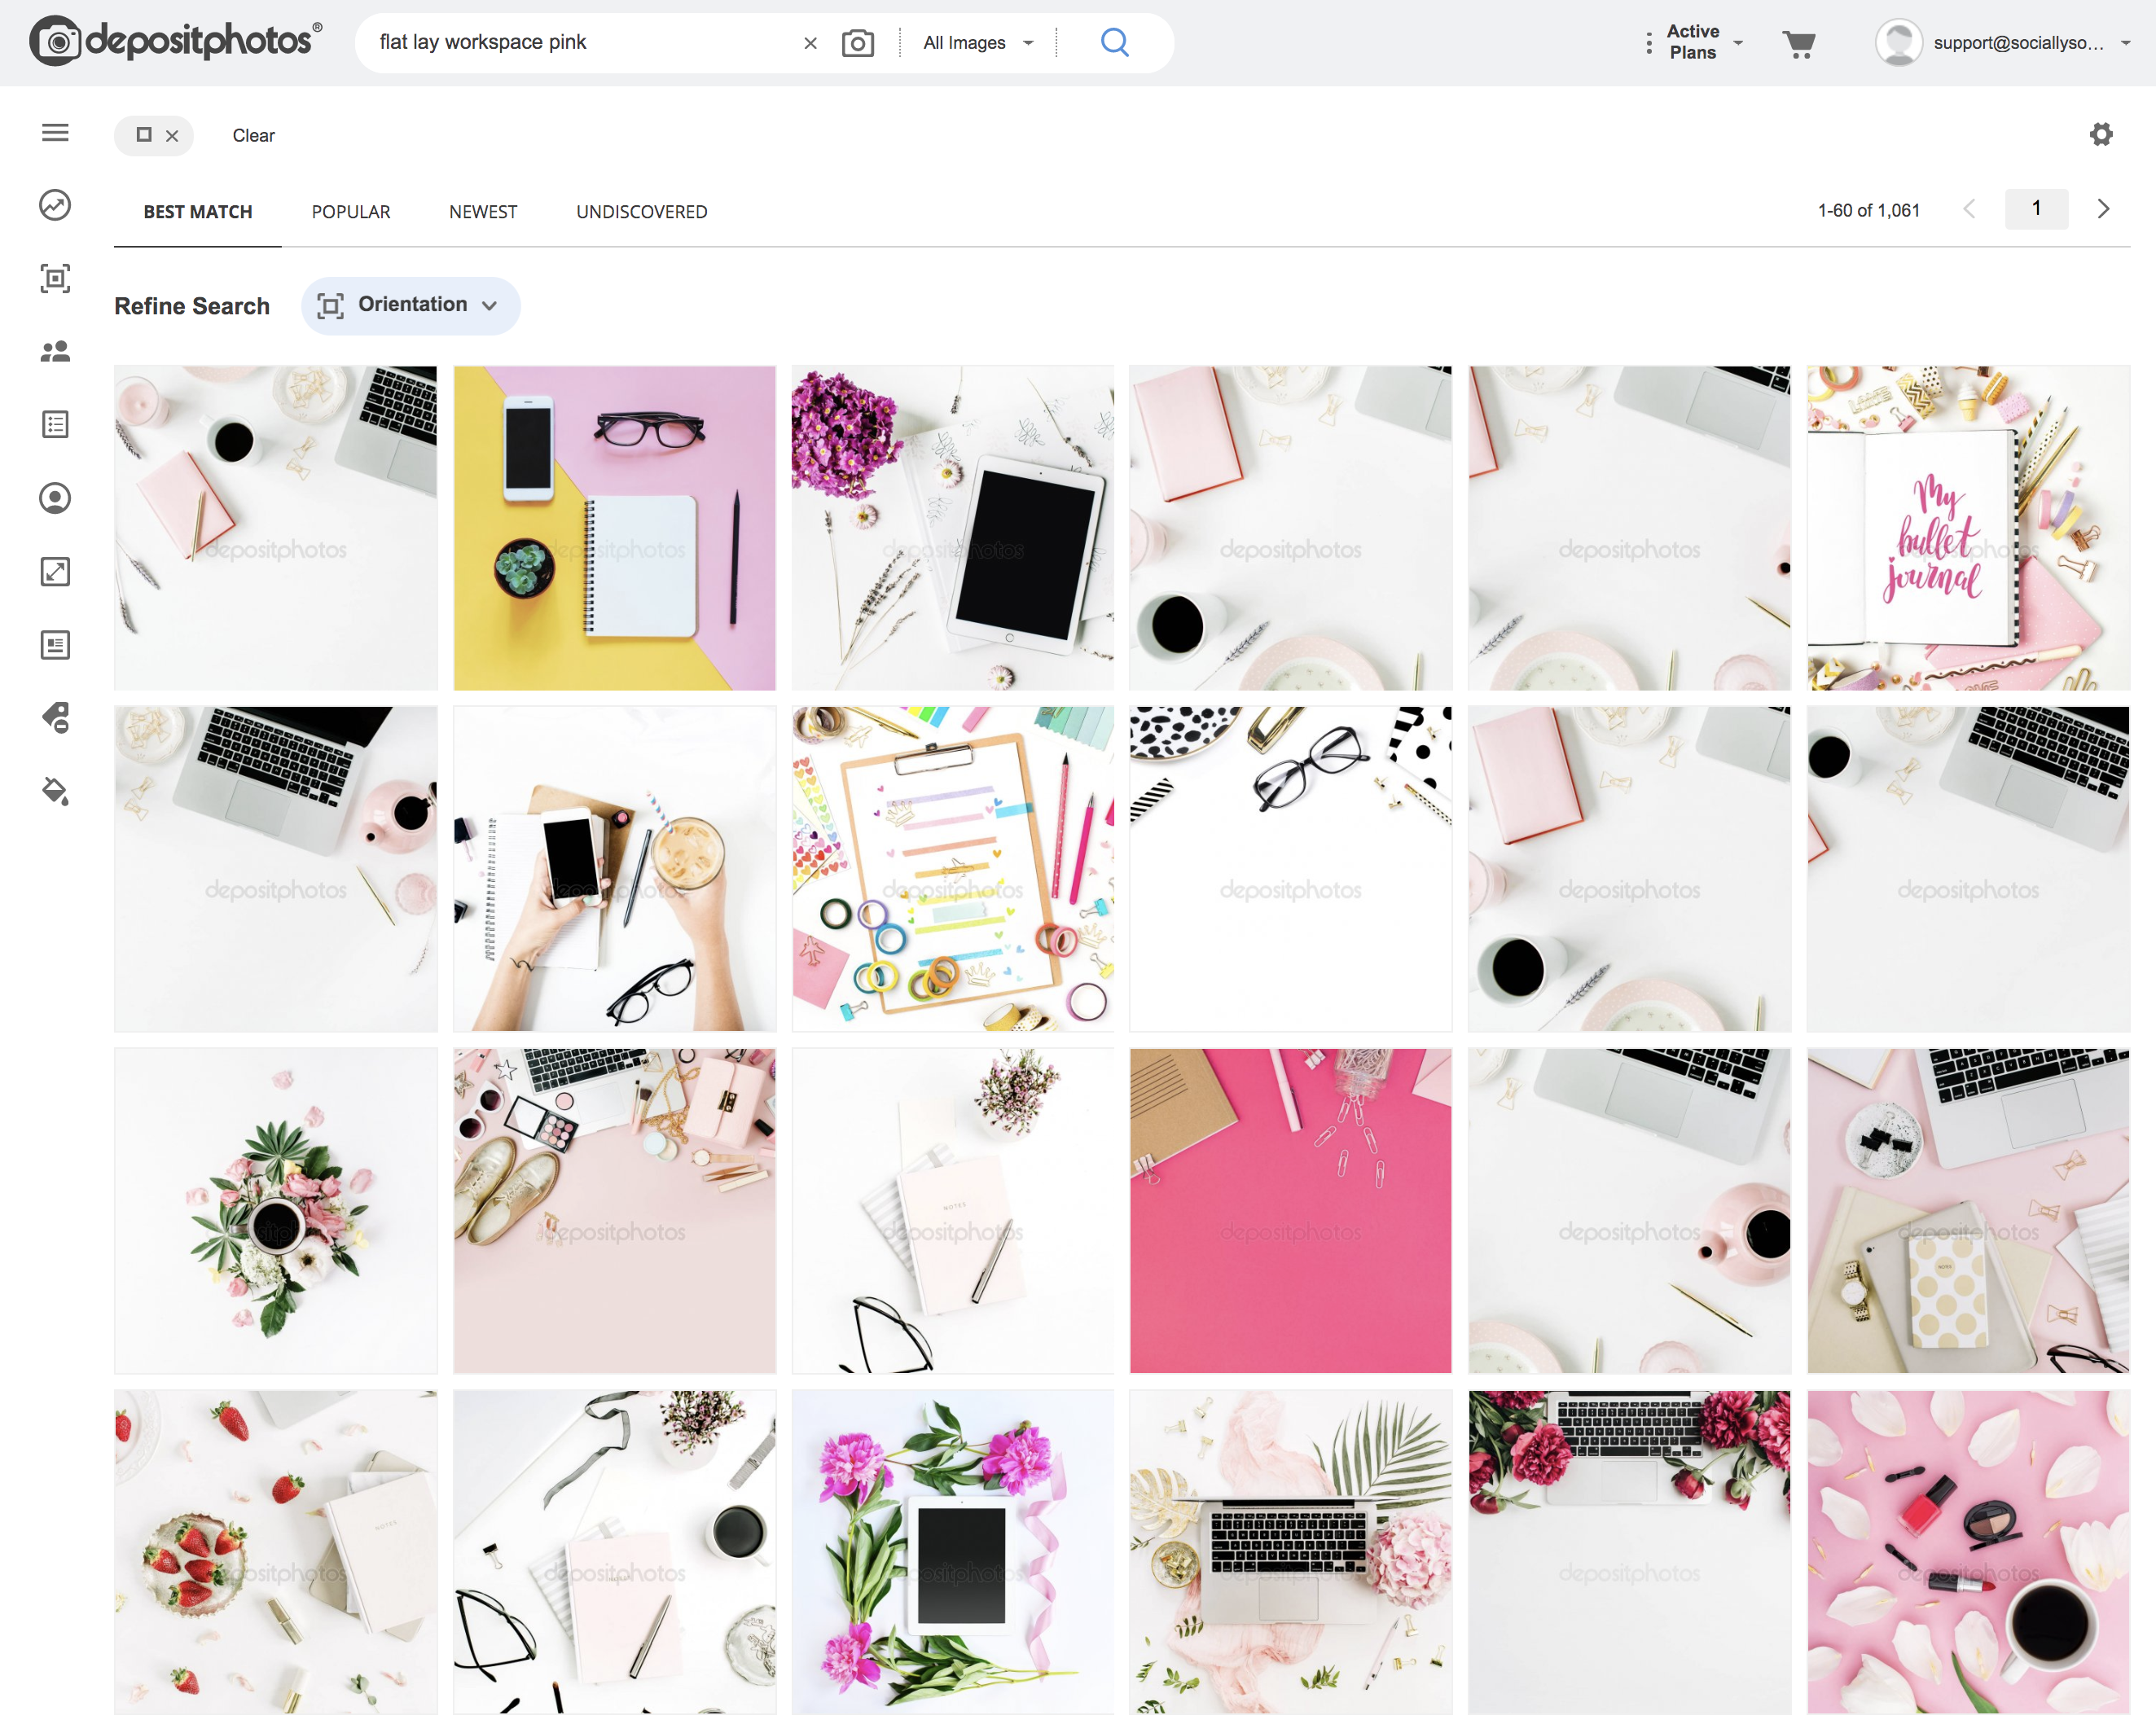 Search for Pink + Workspace + White Space